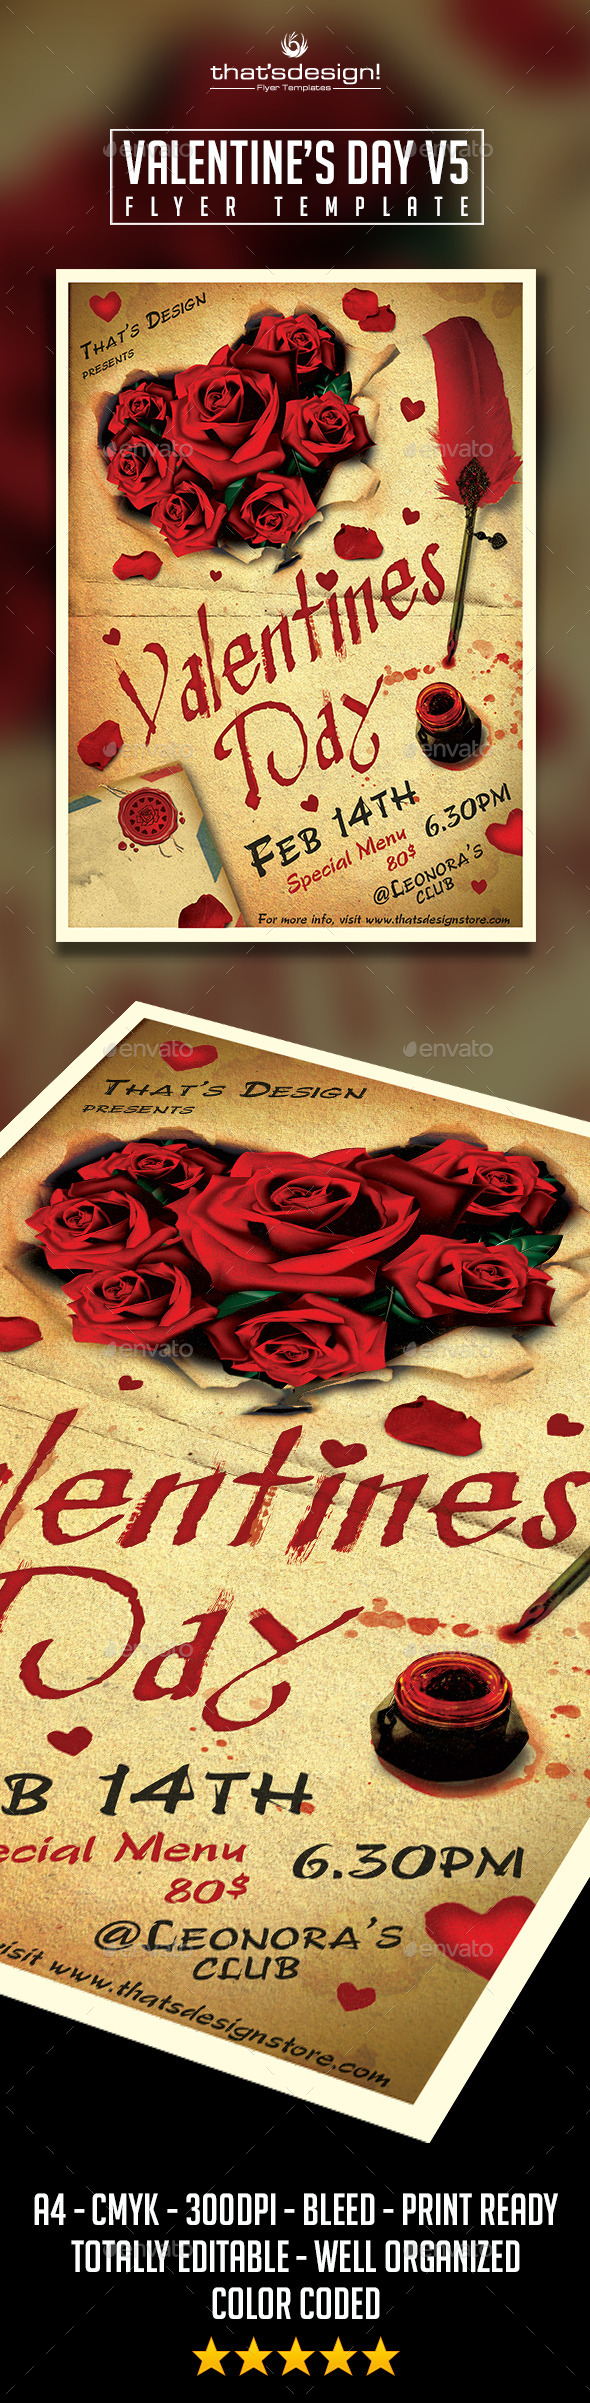 GraphicRiver Valentines Day Flyer Template V5 10031900